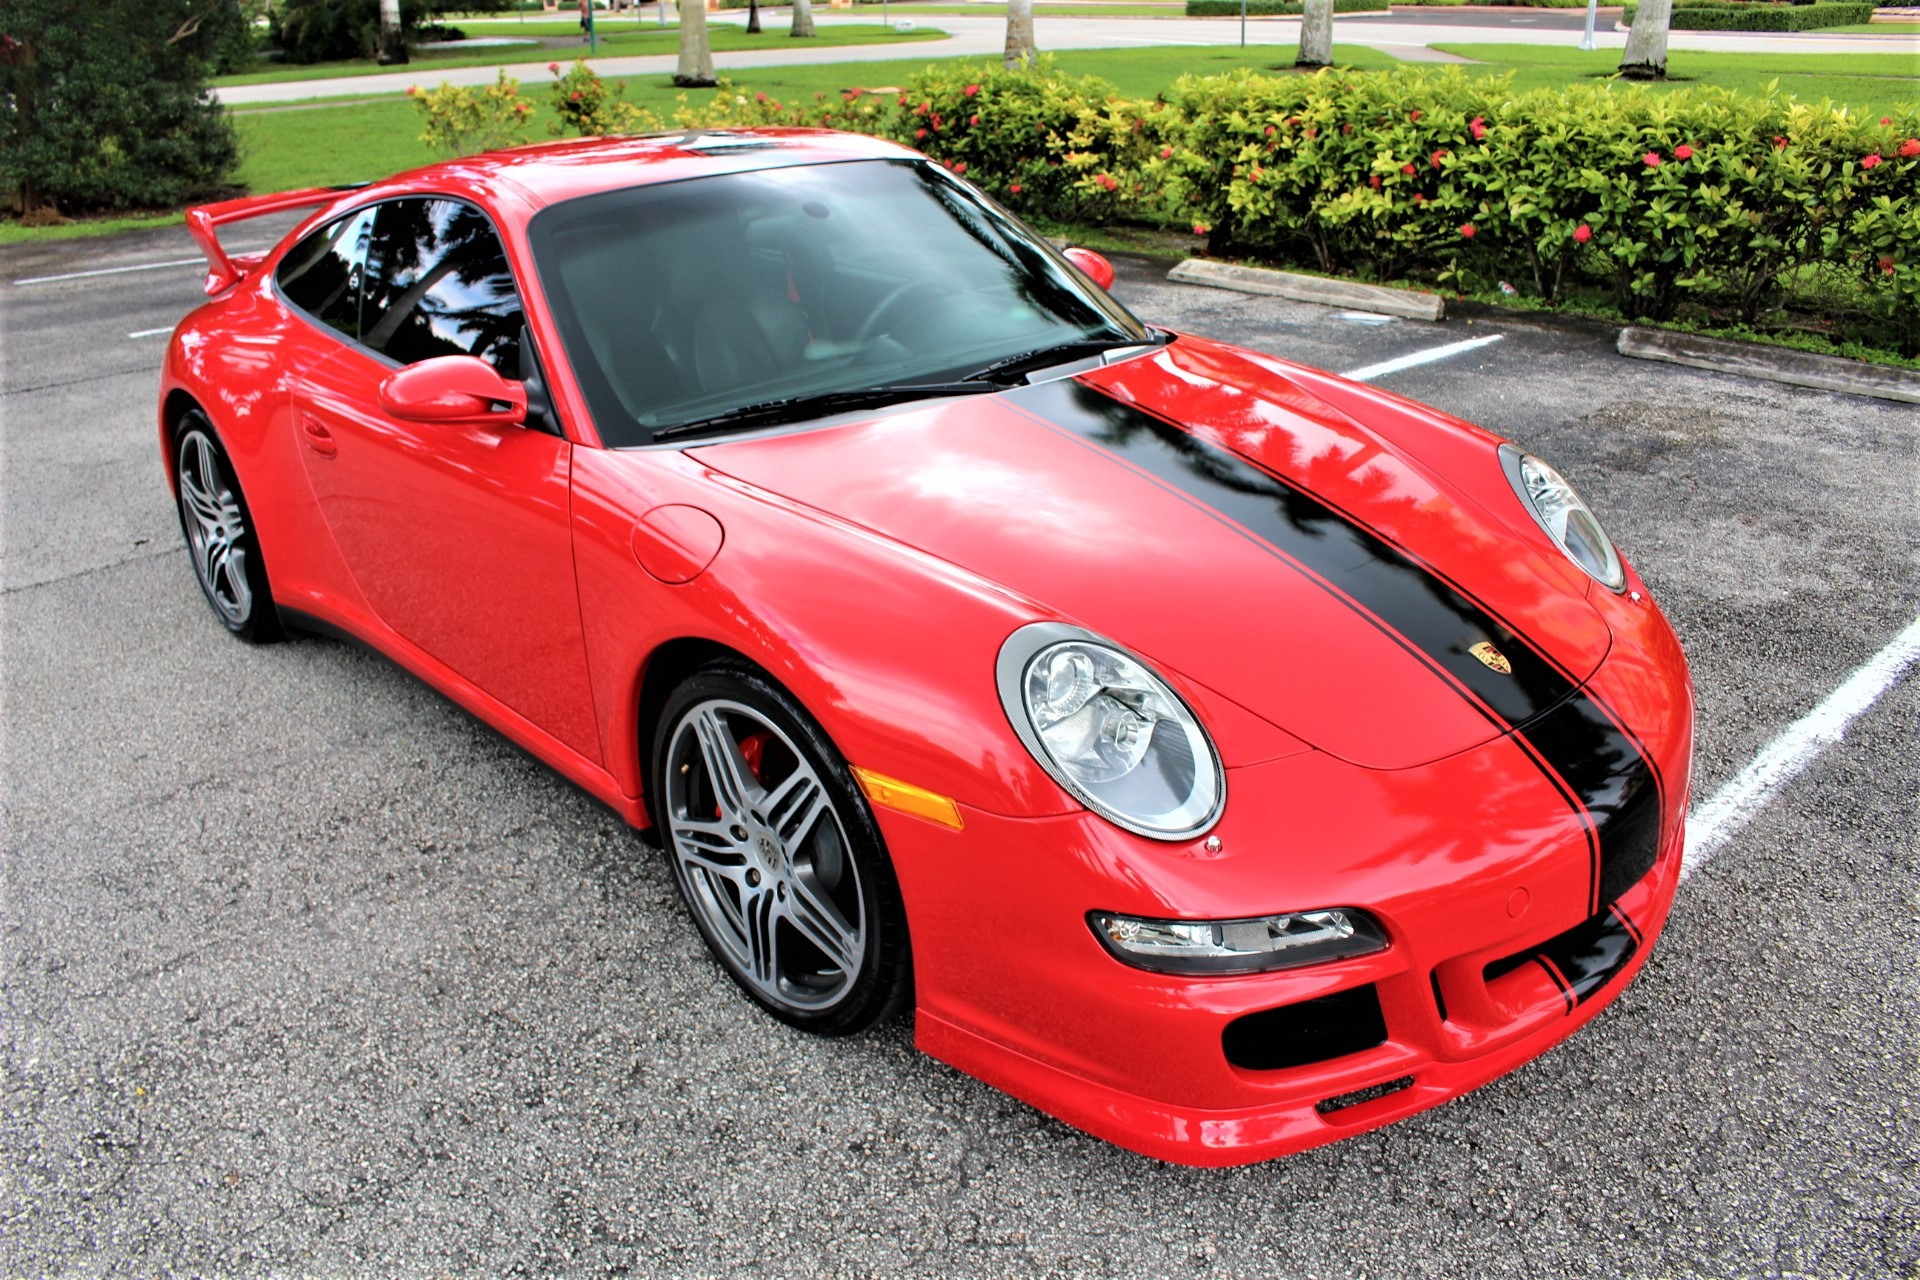 Used 2007 Porsche 911 Carrera 4S for sale $57,850 at The Gables Sports Cars in Miami FL 33146 2